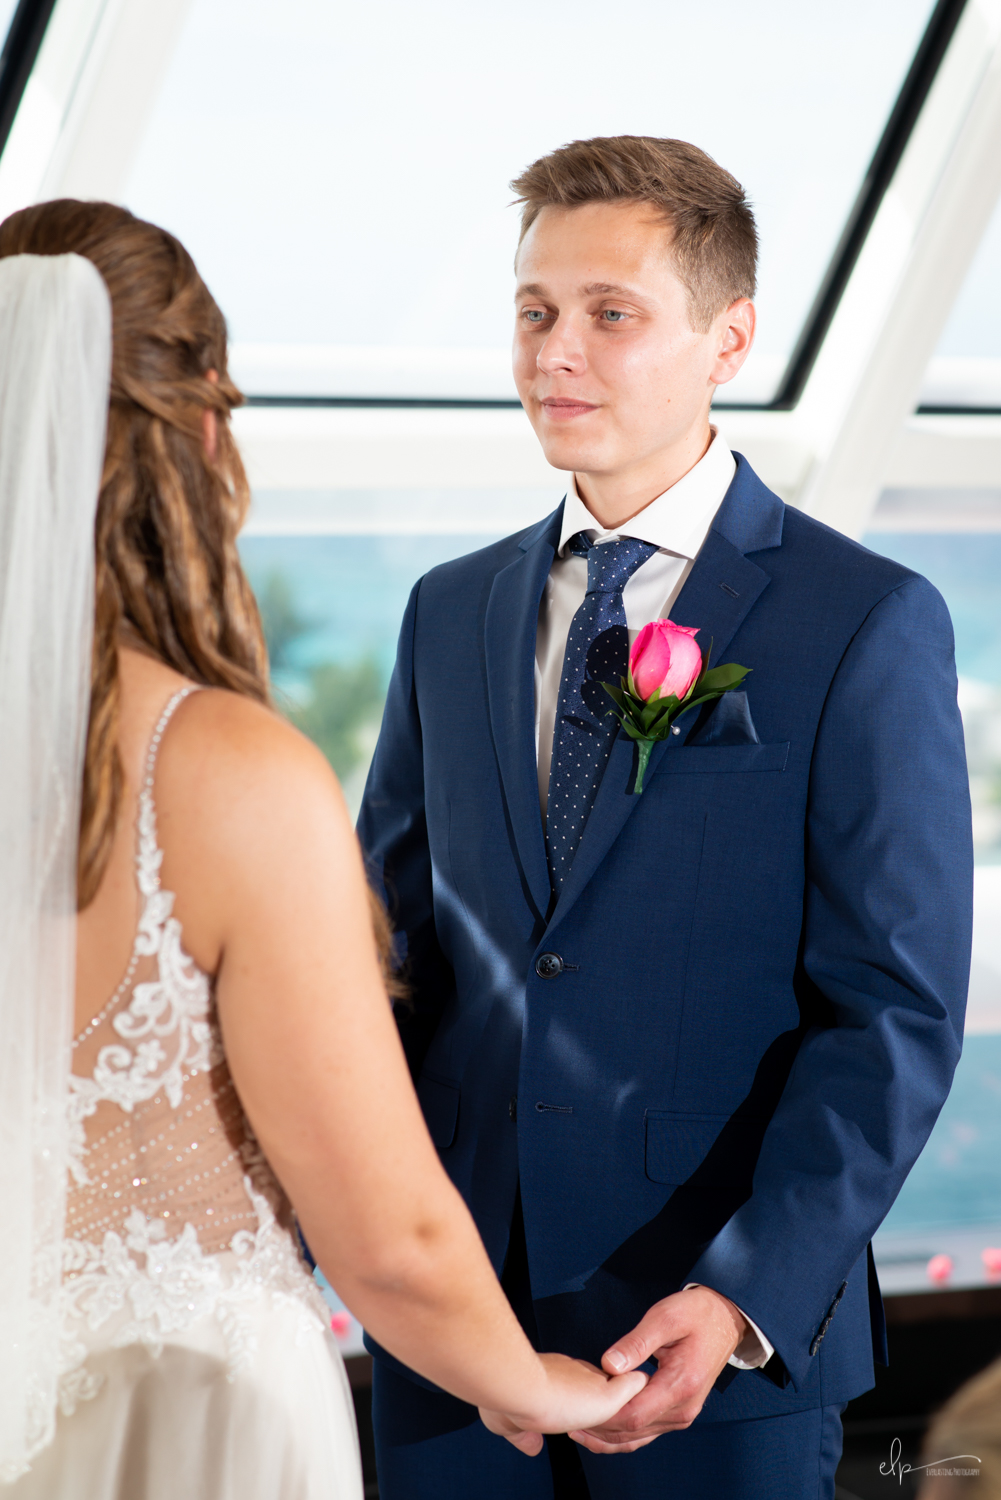 wedding ceremony portrait in outlook lounge on disney cruise